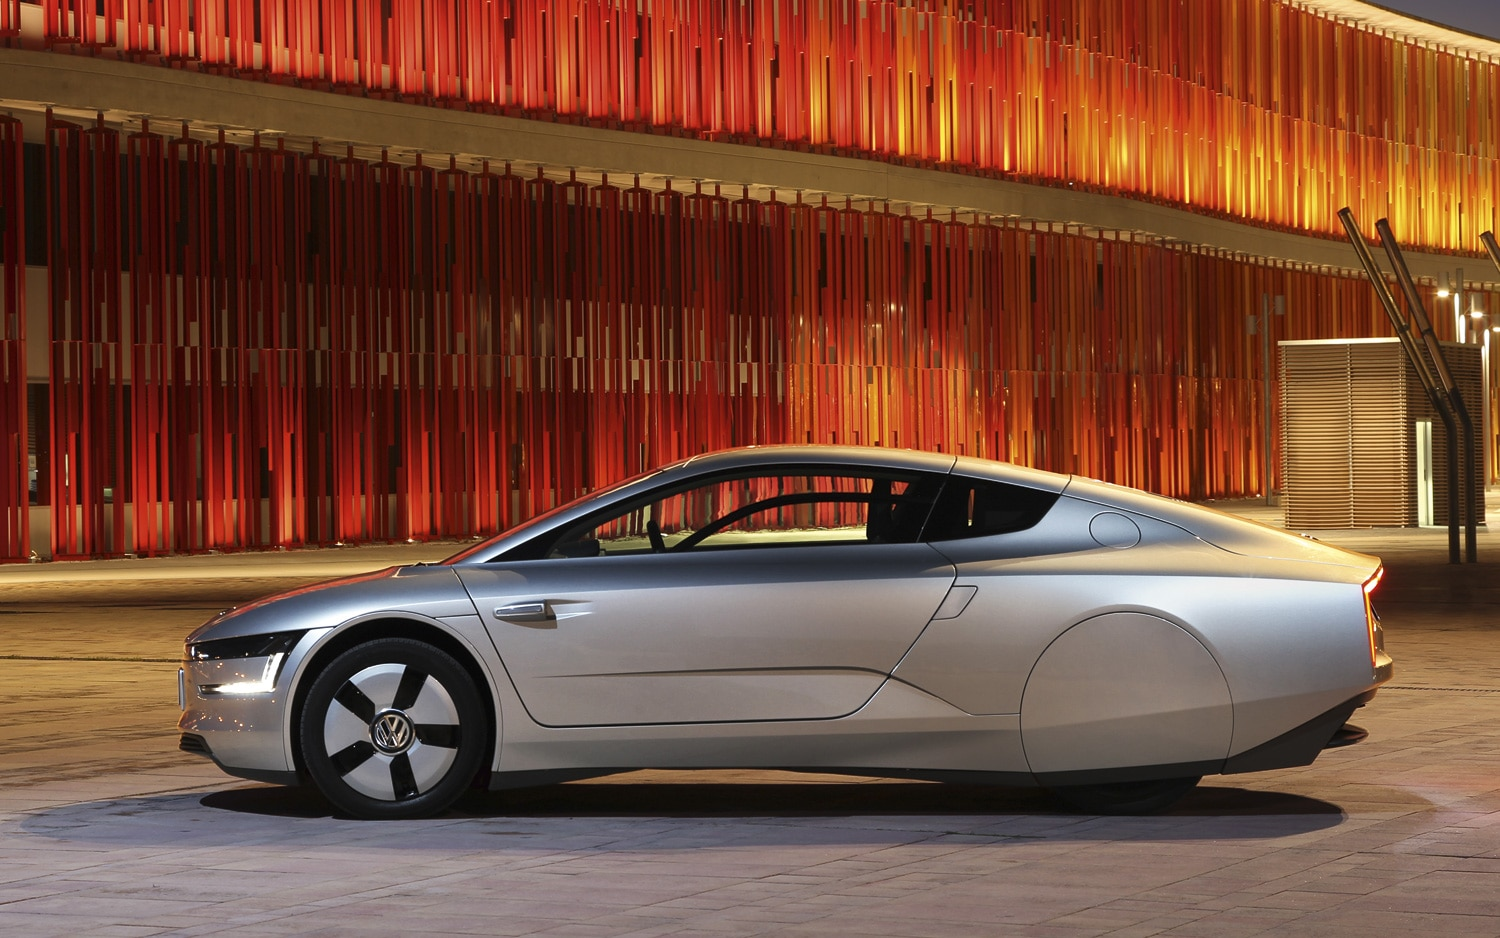 2014 Volkswagen XL1 Side View At Night1